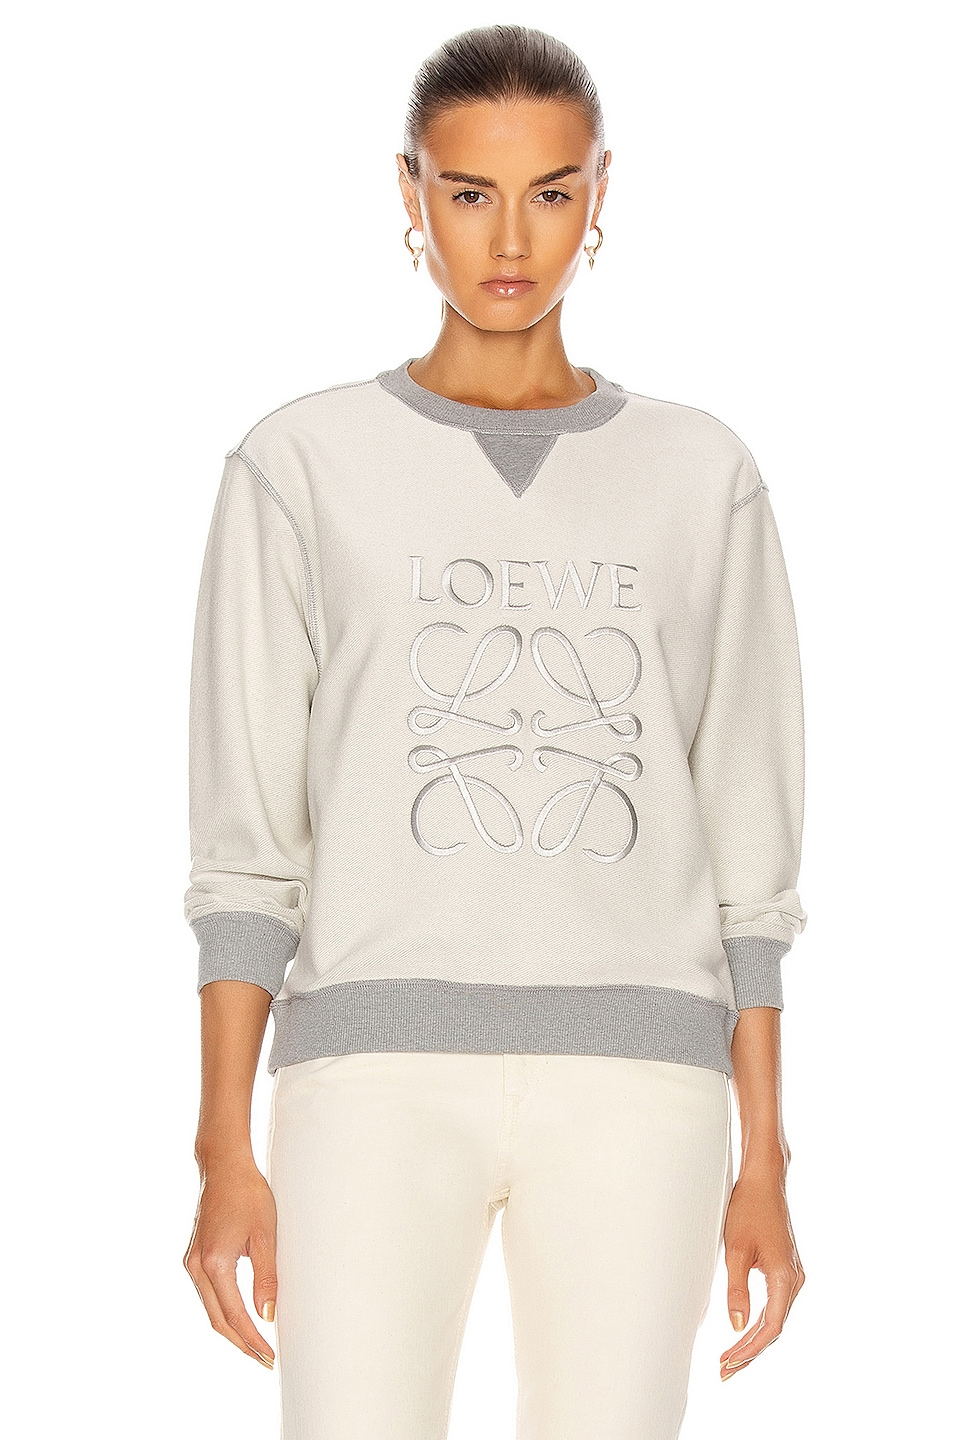 Image 1 of Loewe Anagram Sweatshirt in Grey Melange